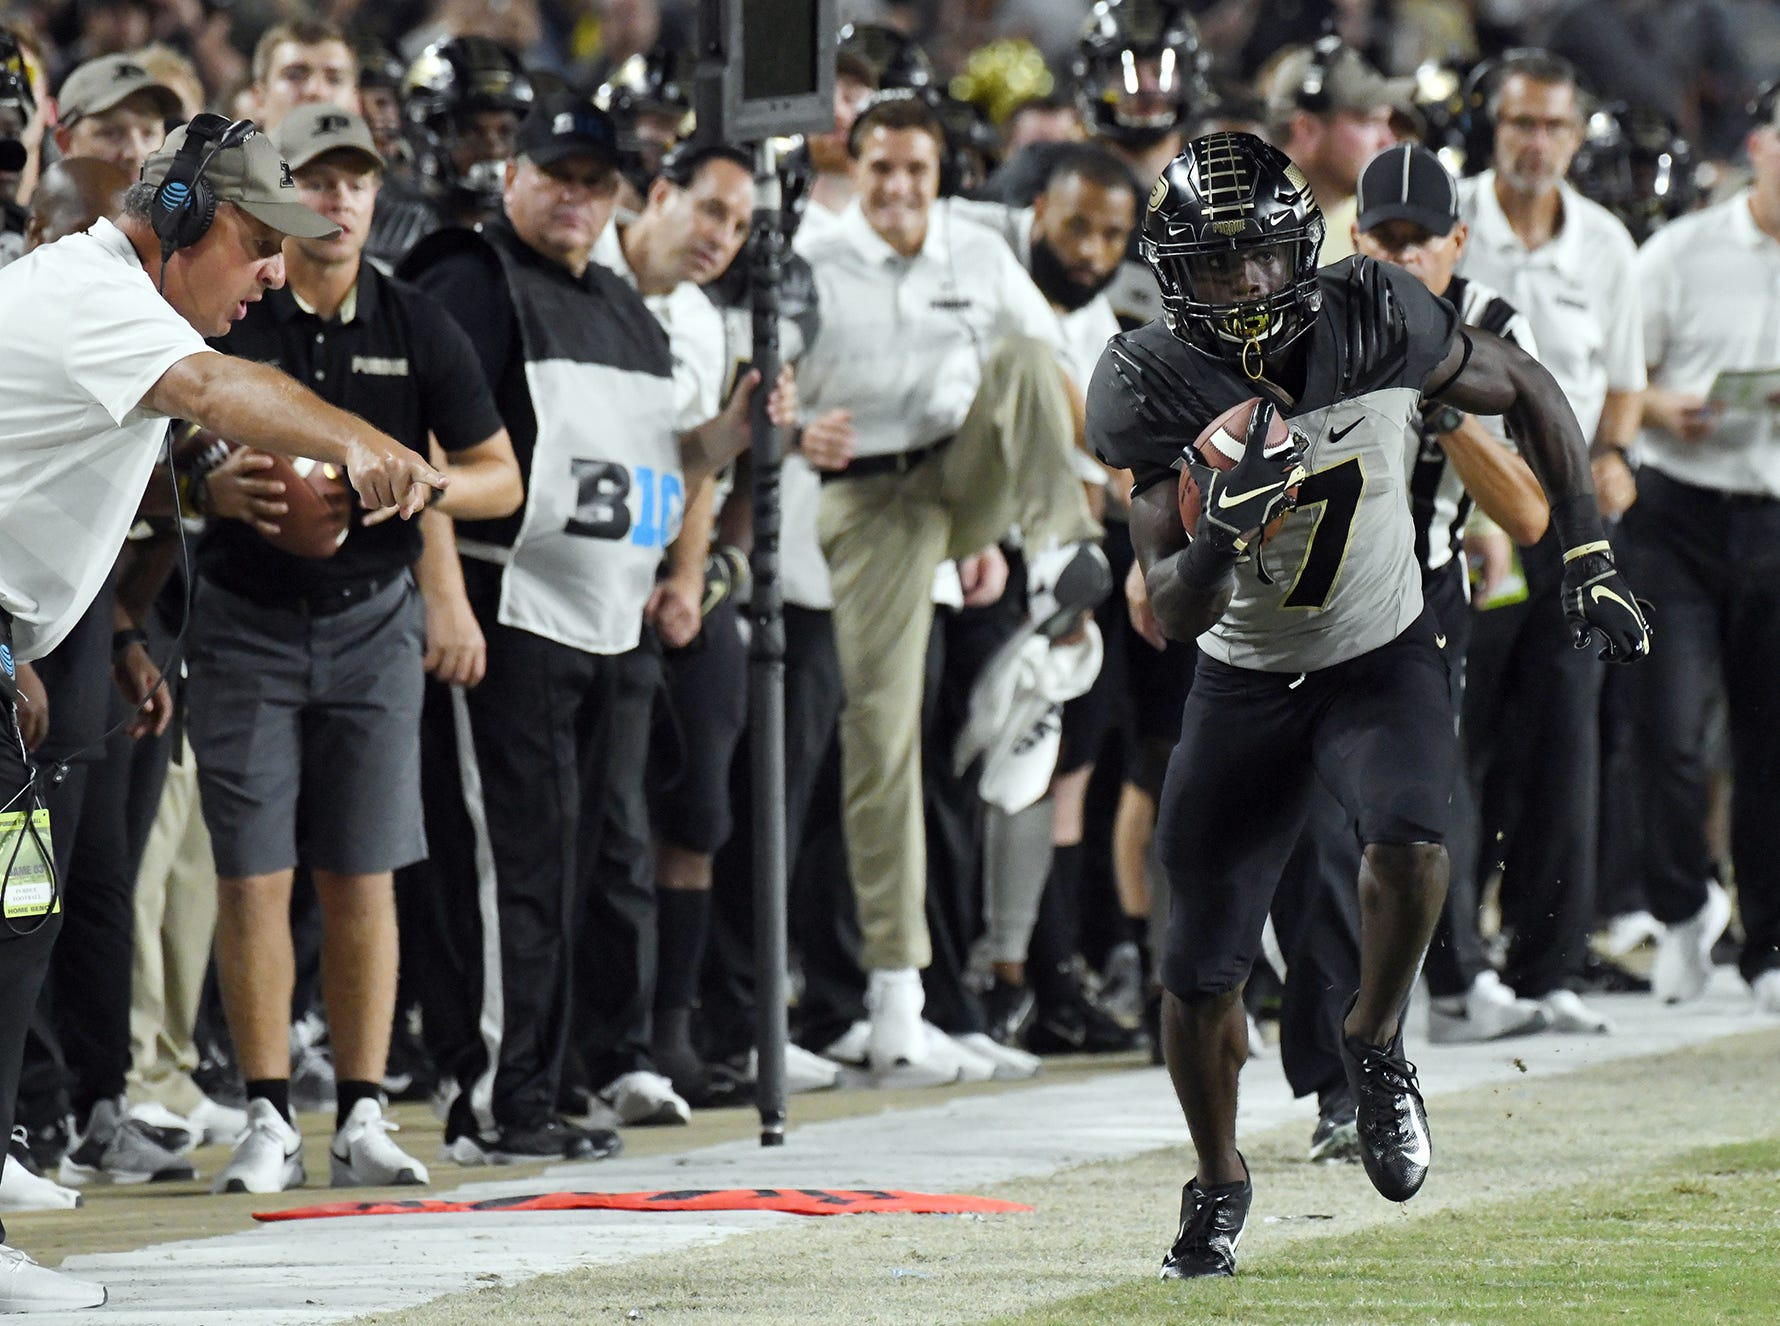 Isaac Zico of Purdue steps out of bounds on a long pass reception against Missouri in the second half Saturday, September 15, 2018, in West Lafayette. Purdue lost 40-37 on a Missouri field goal as time expired.